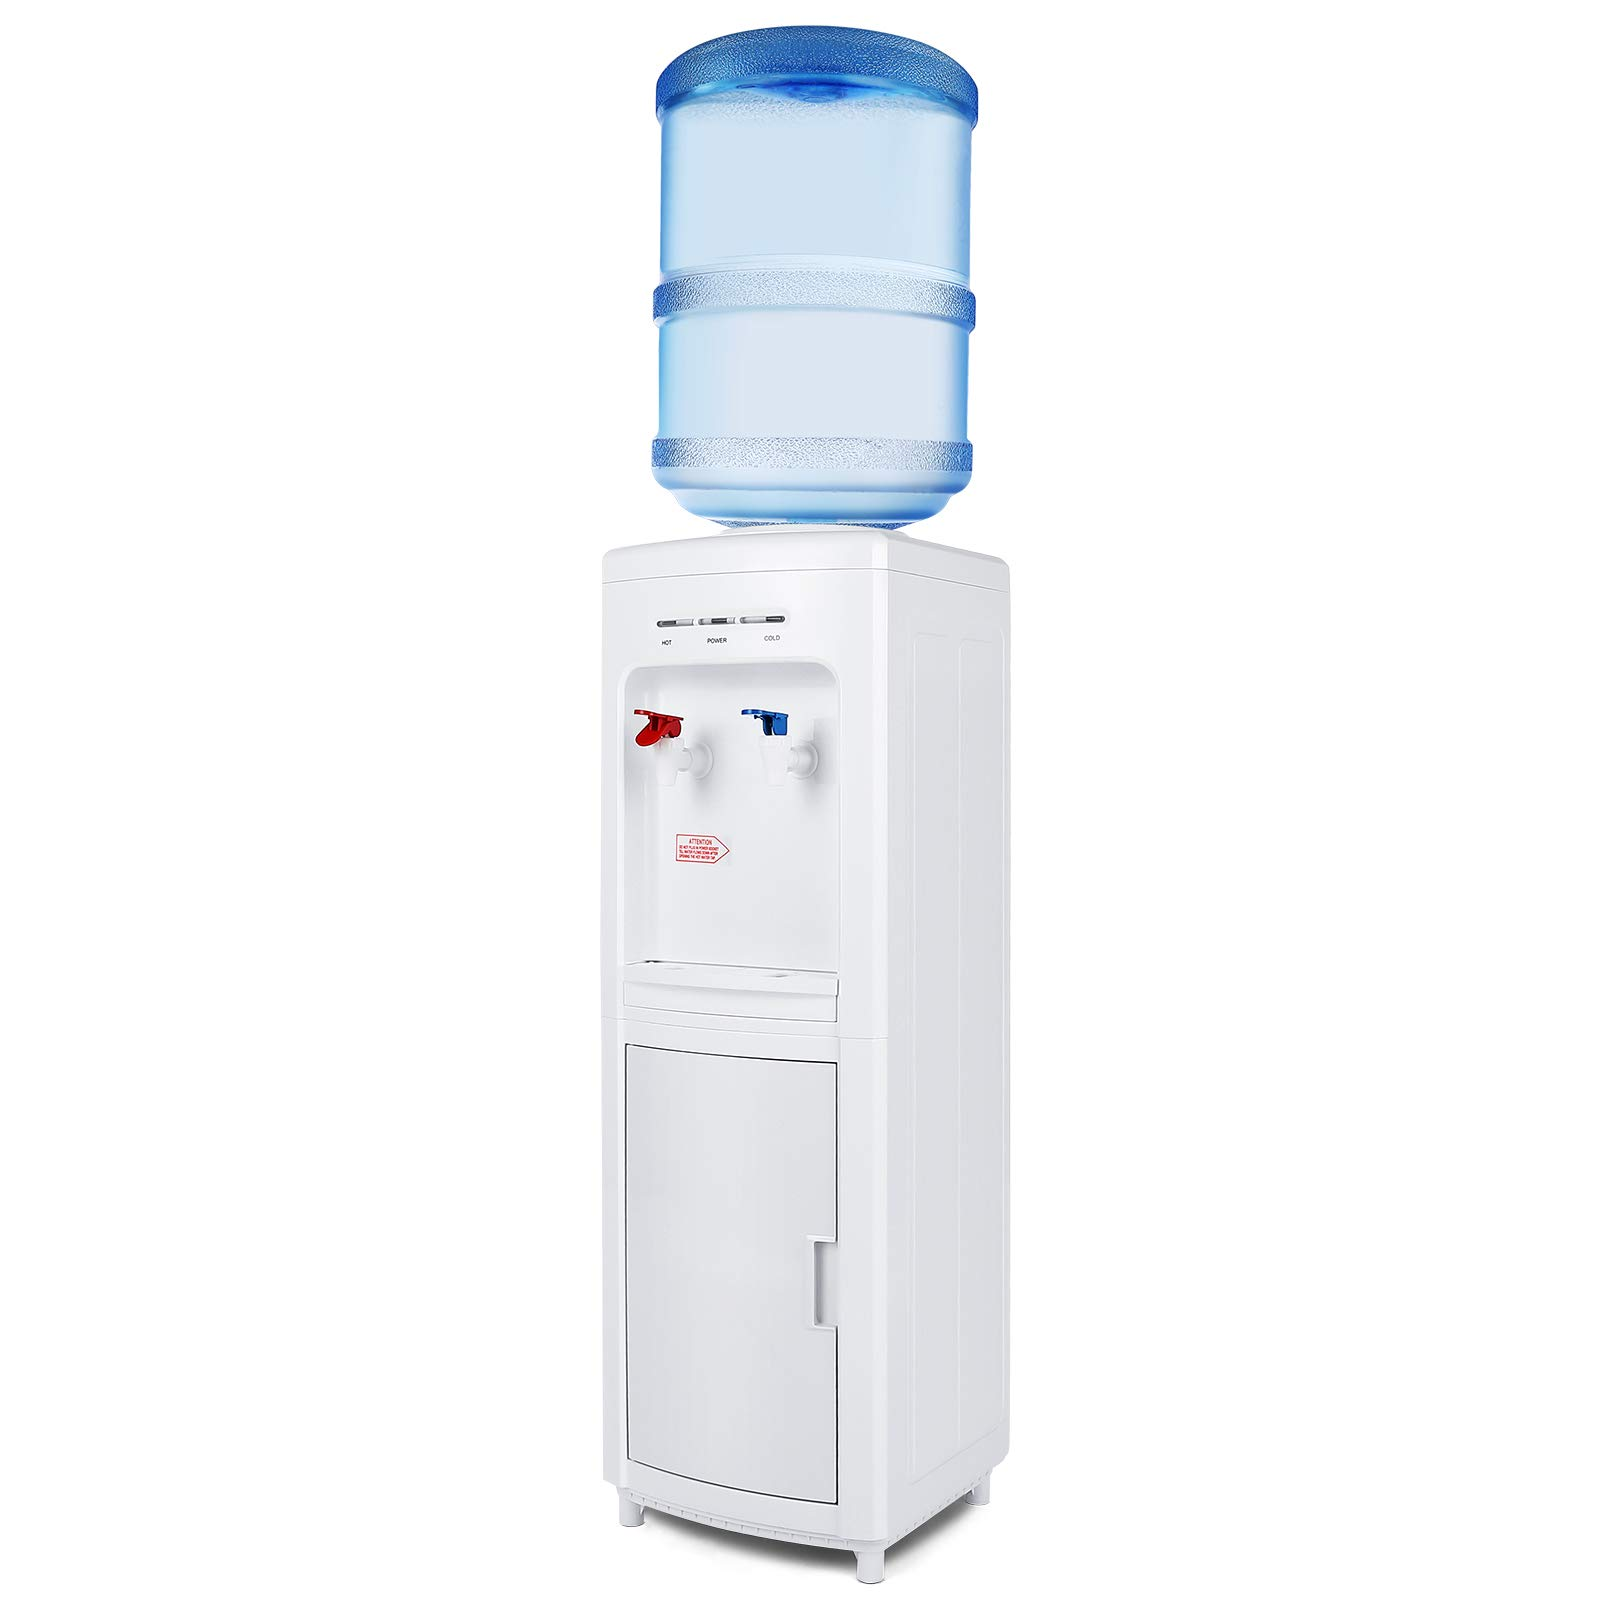 Top Load Electric Water Dispenser Storage 5 Gallon Normal Temperature & Hot Temperature Storage Cabinet White by 4-EVER